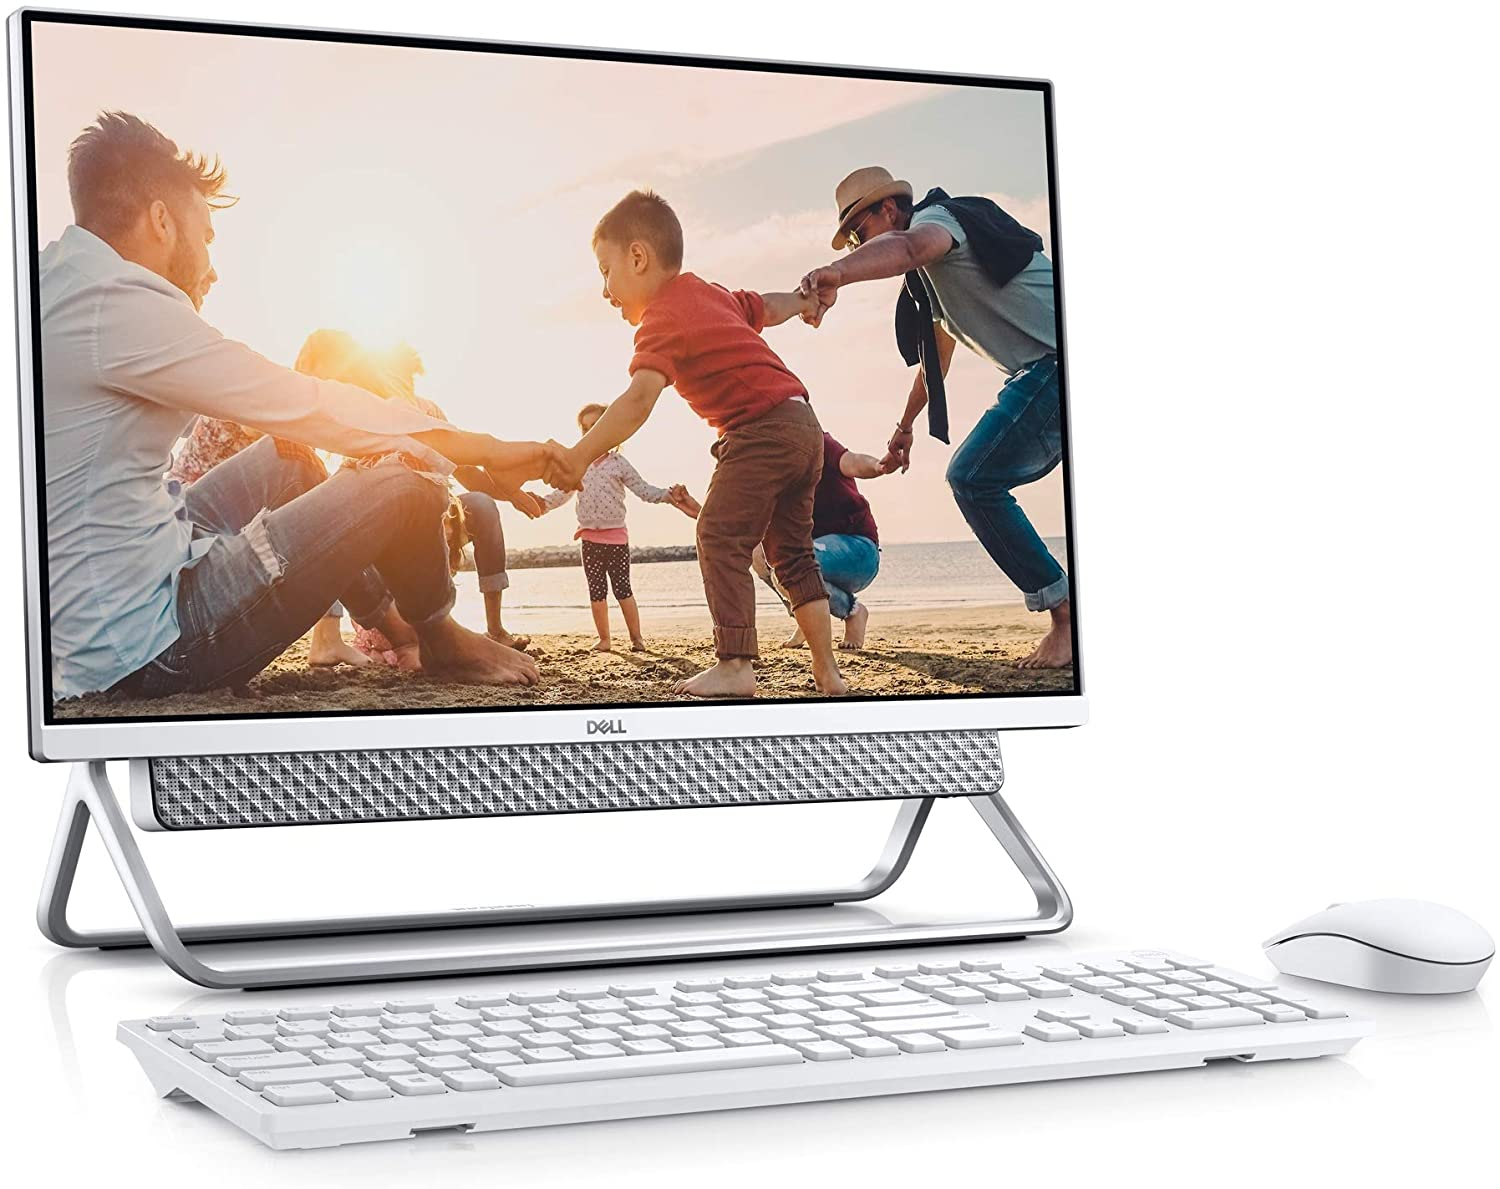 Dell Inspiron 24 5000 Series All-in-One Desktop